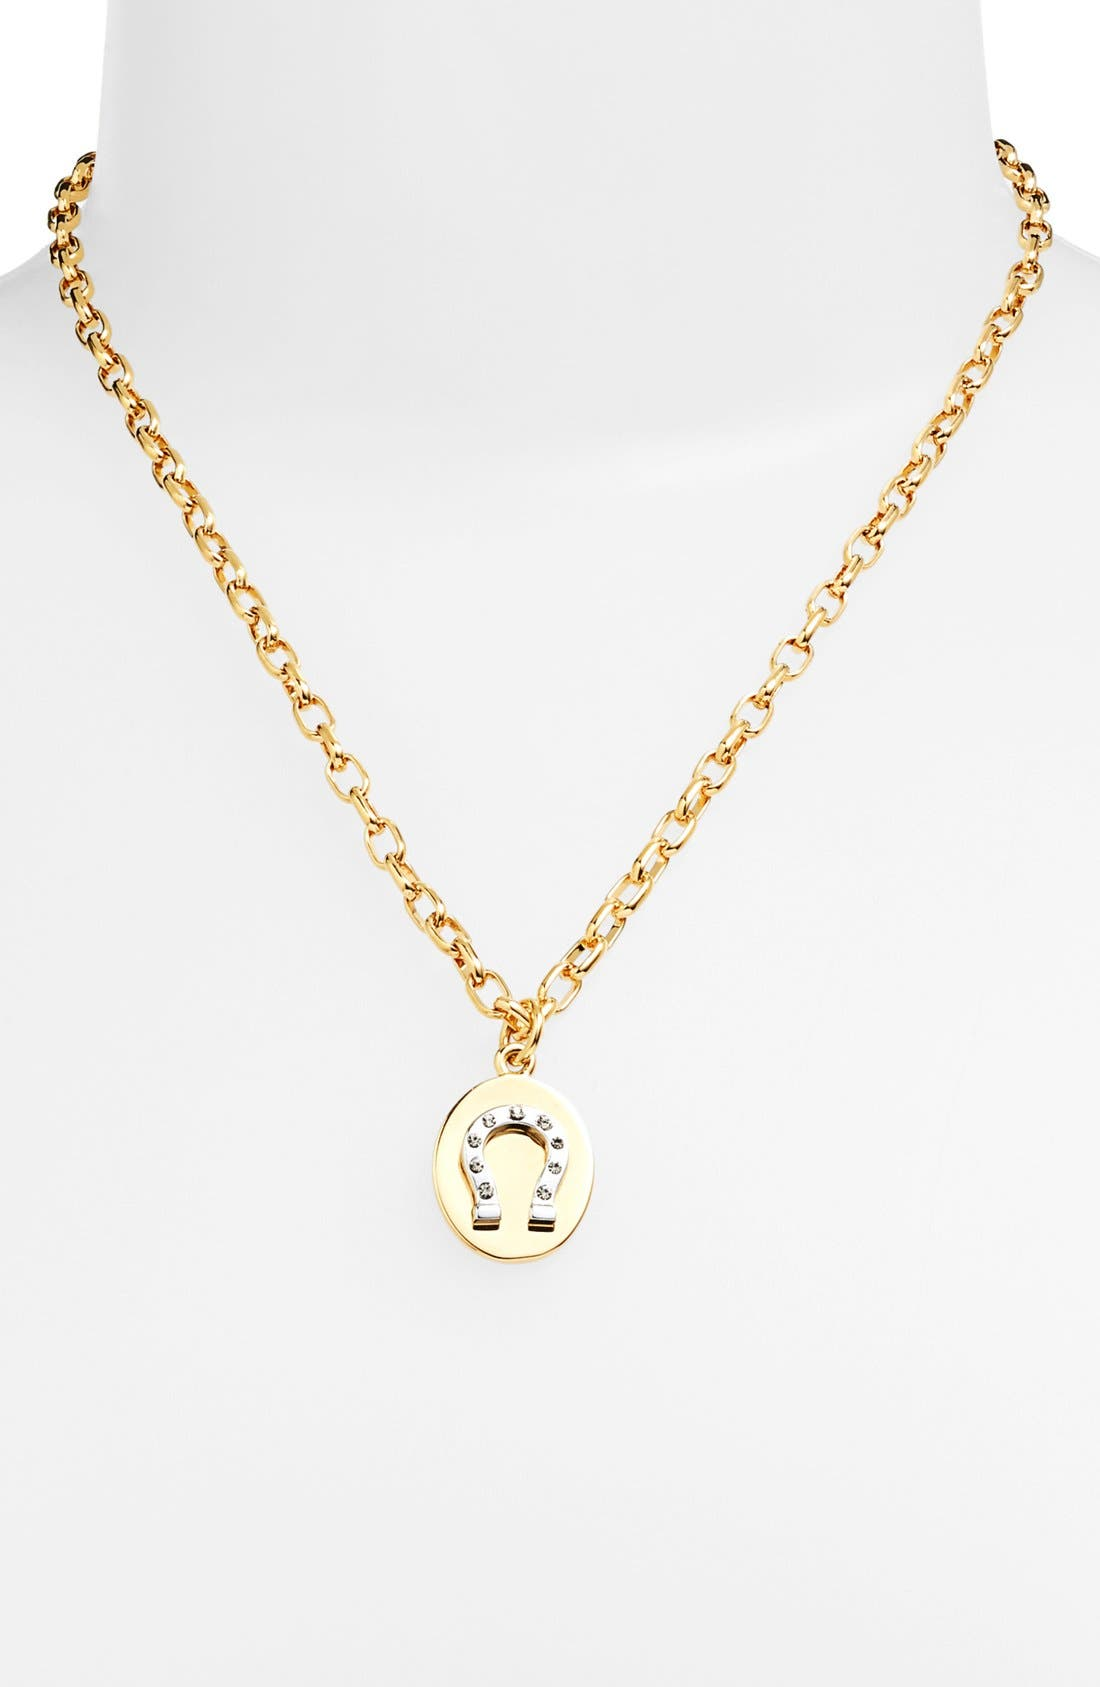 Alternate Image 1 Selected - Tory Burch 'Sylbie' Horseshoe Charm Necklace